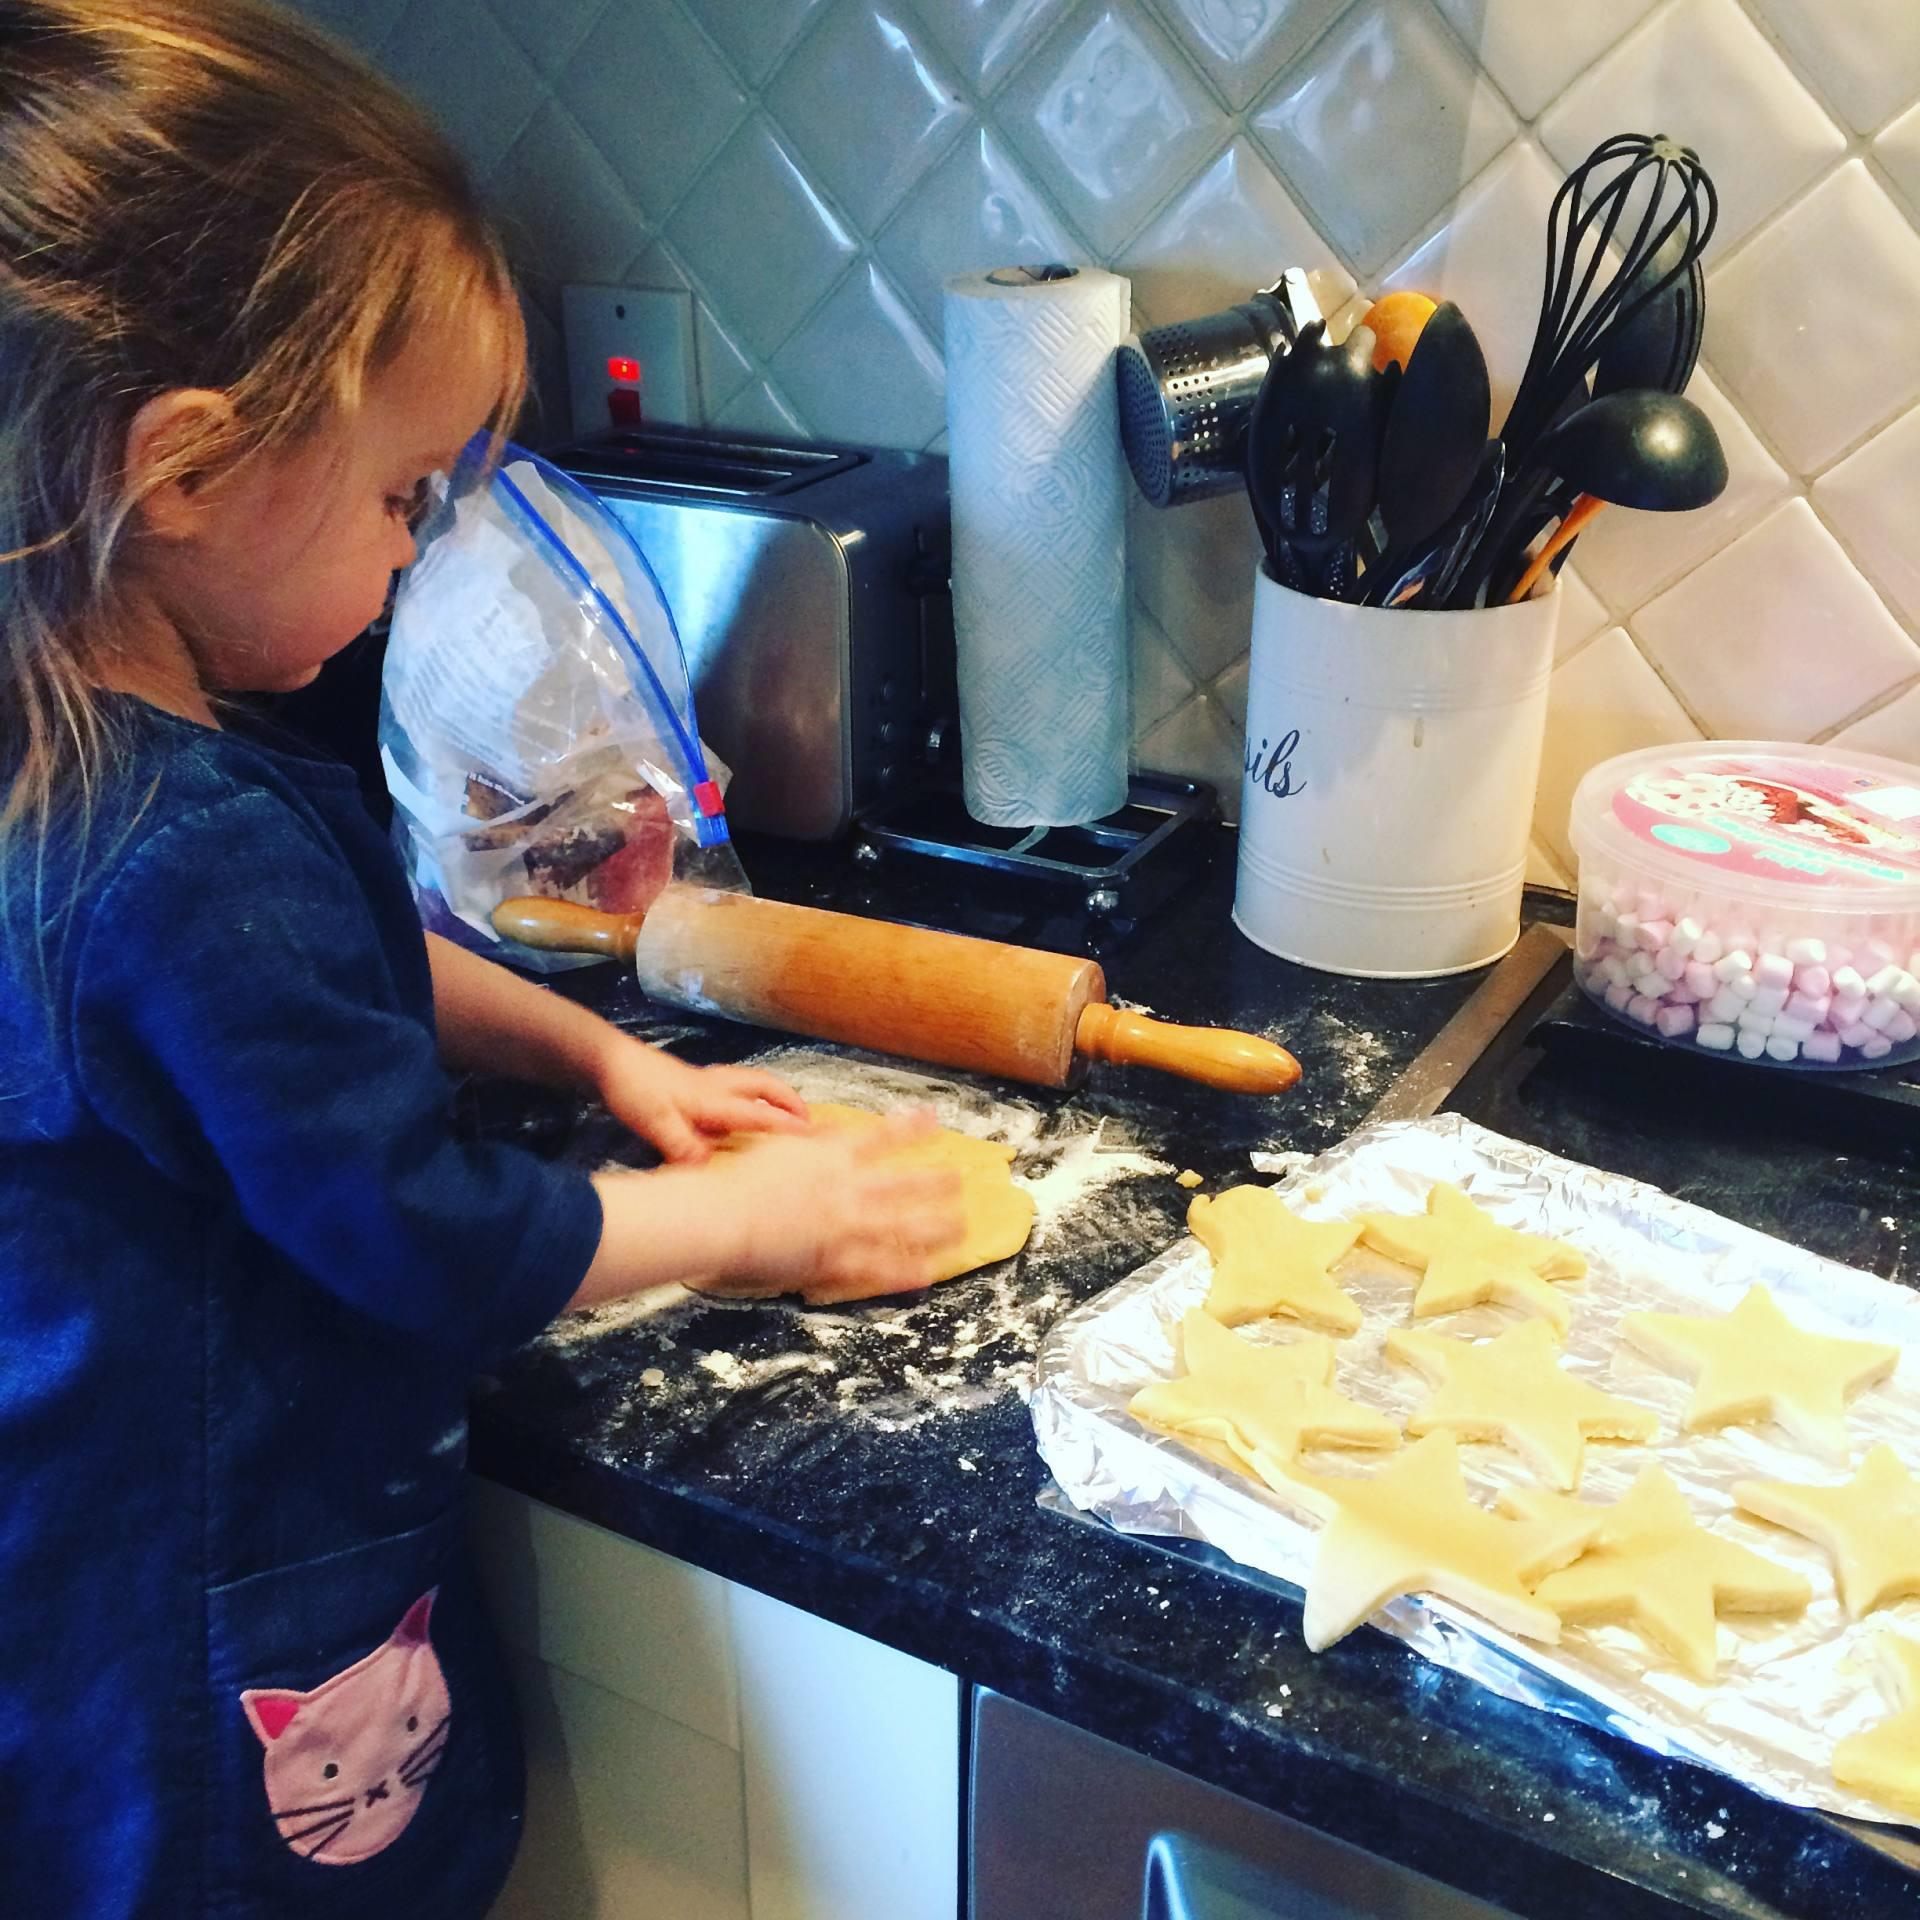 34 Easy Steps for Baking with Children: The Alternative Guide